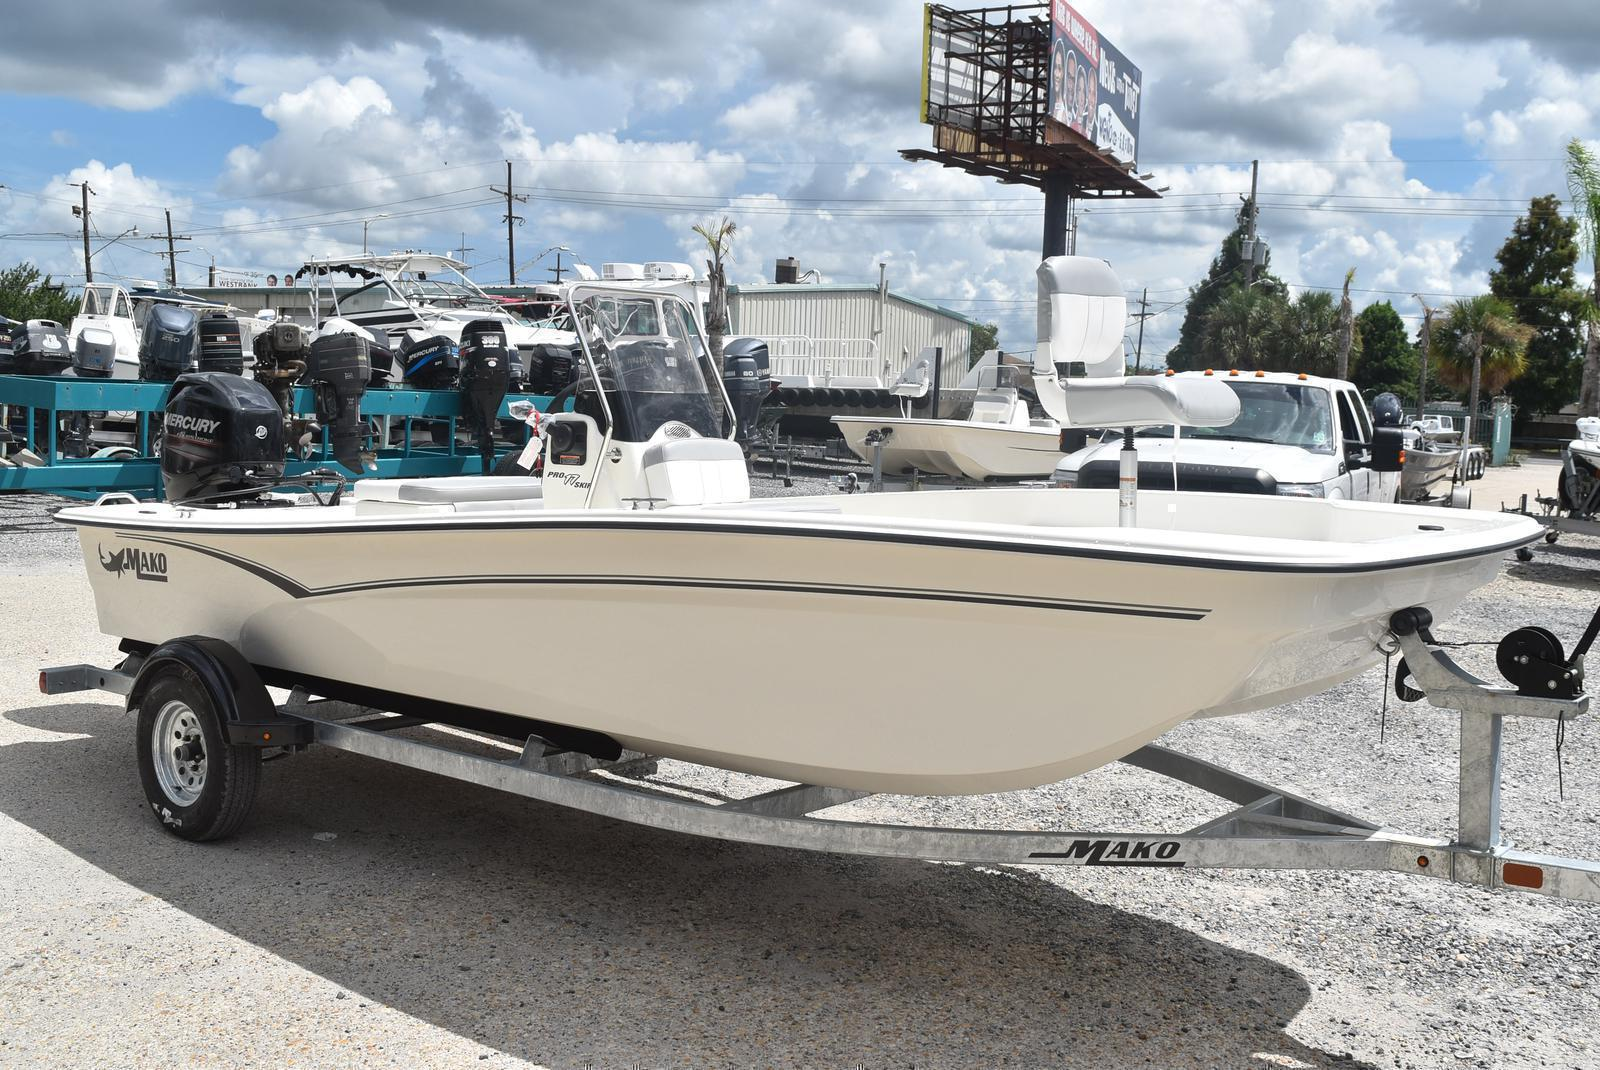 2020 Mako boat for sale, model of the boat is Pro Skiff 17, 75 ELPT & Image # 628 of 702